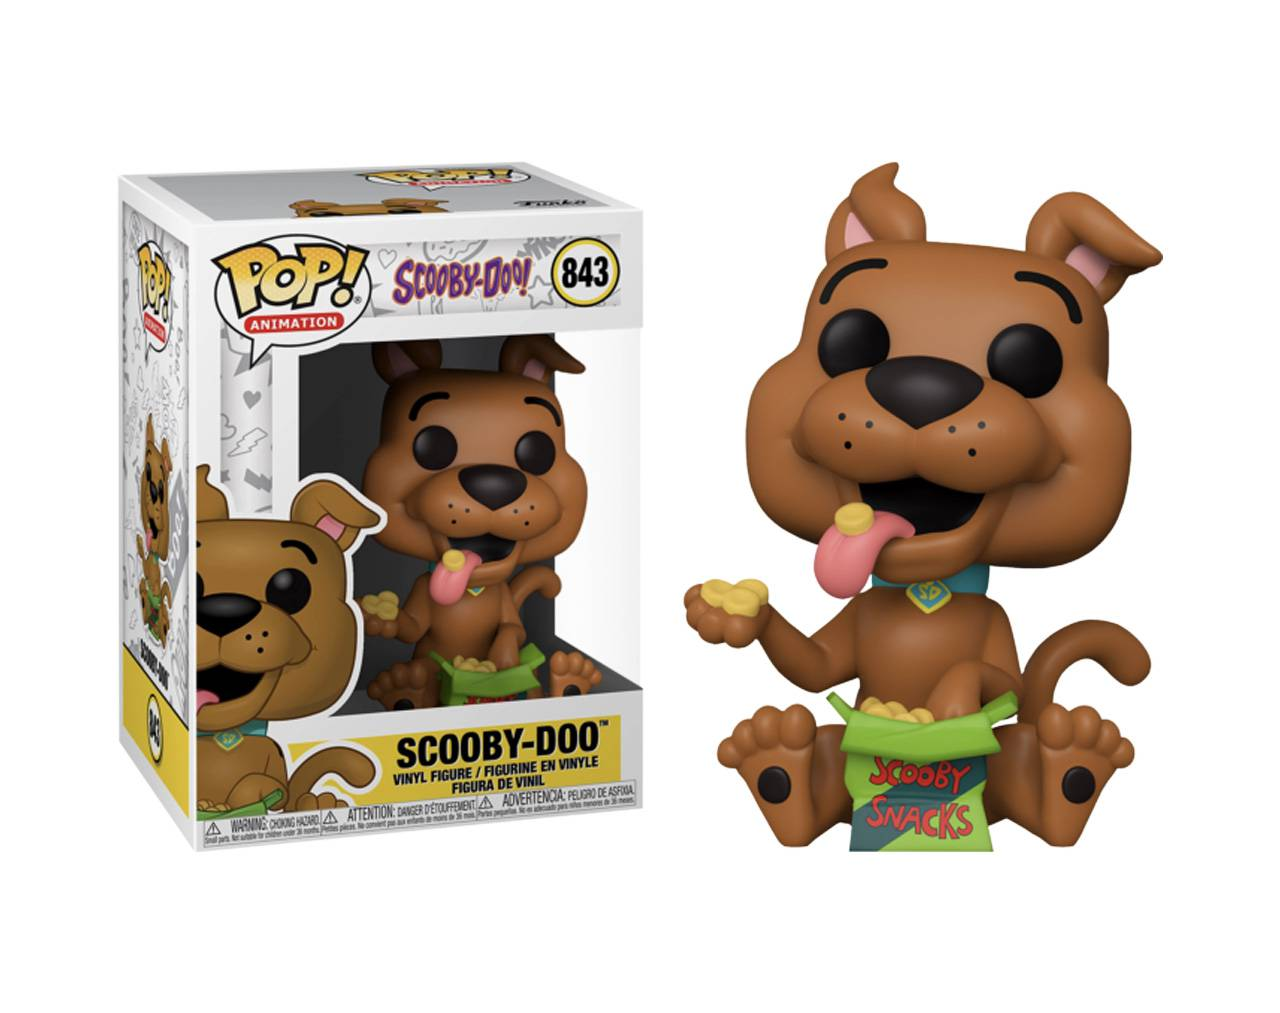 Scooby-Doo (Scooby Snacks) Pop! Vinyl